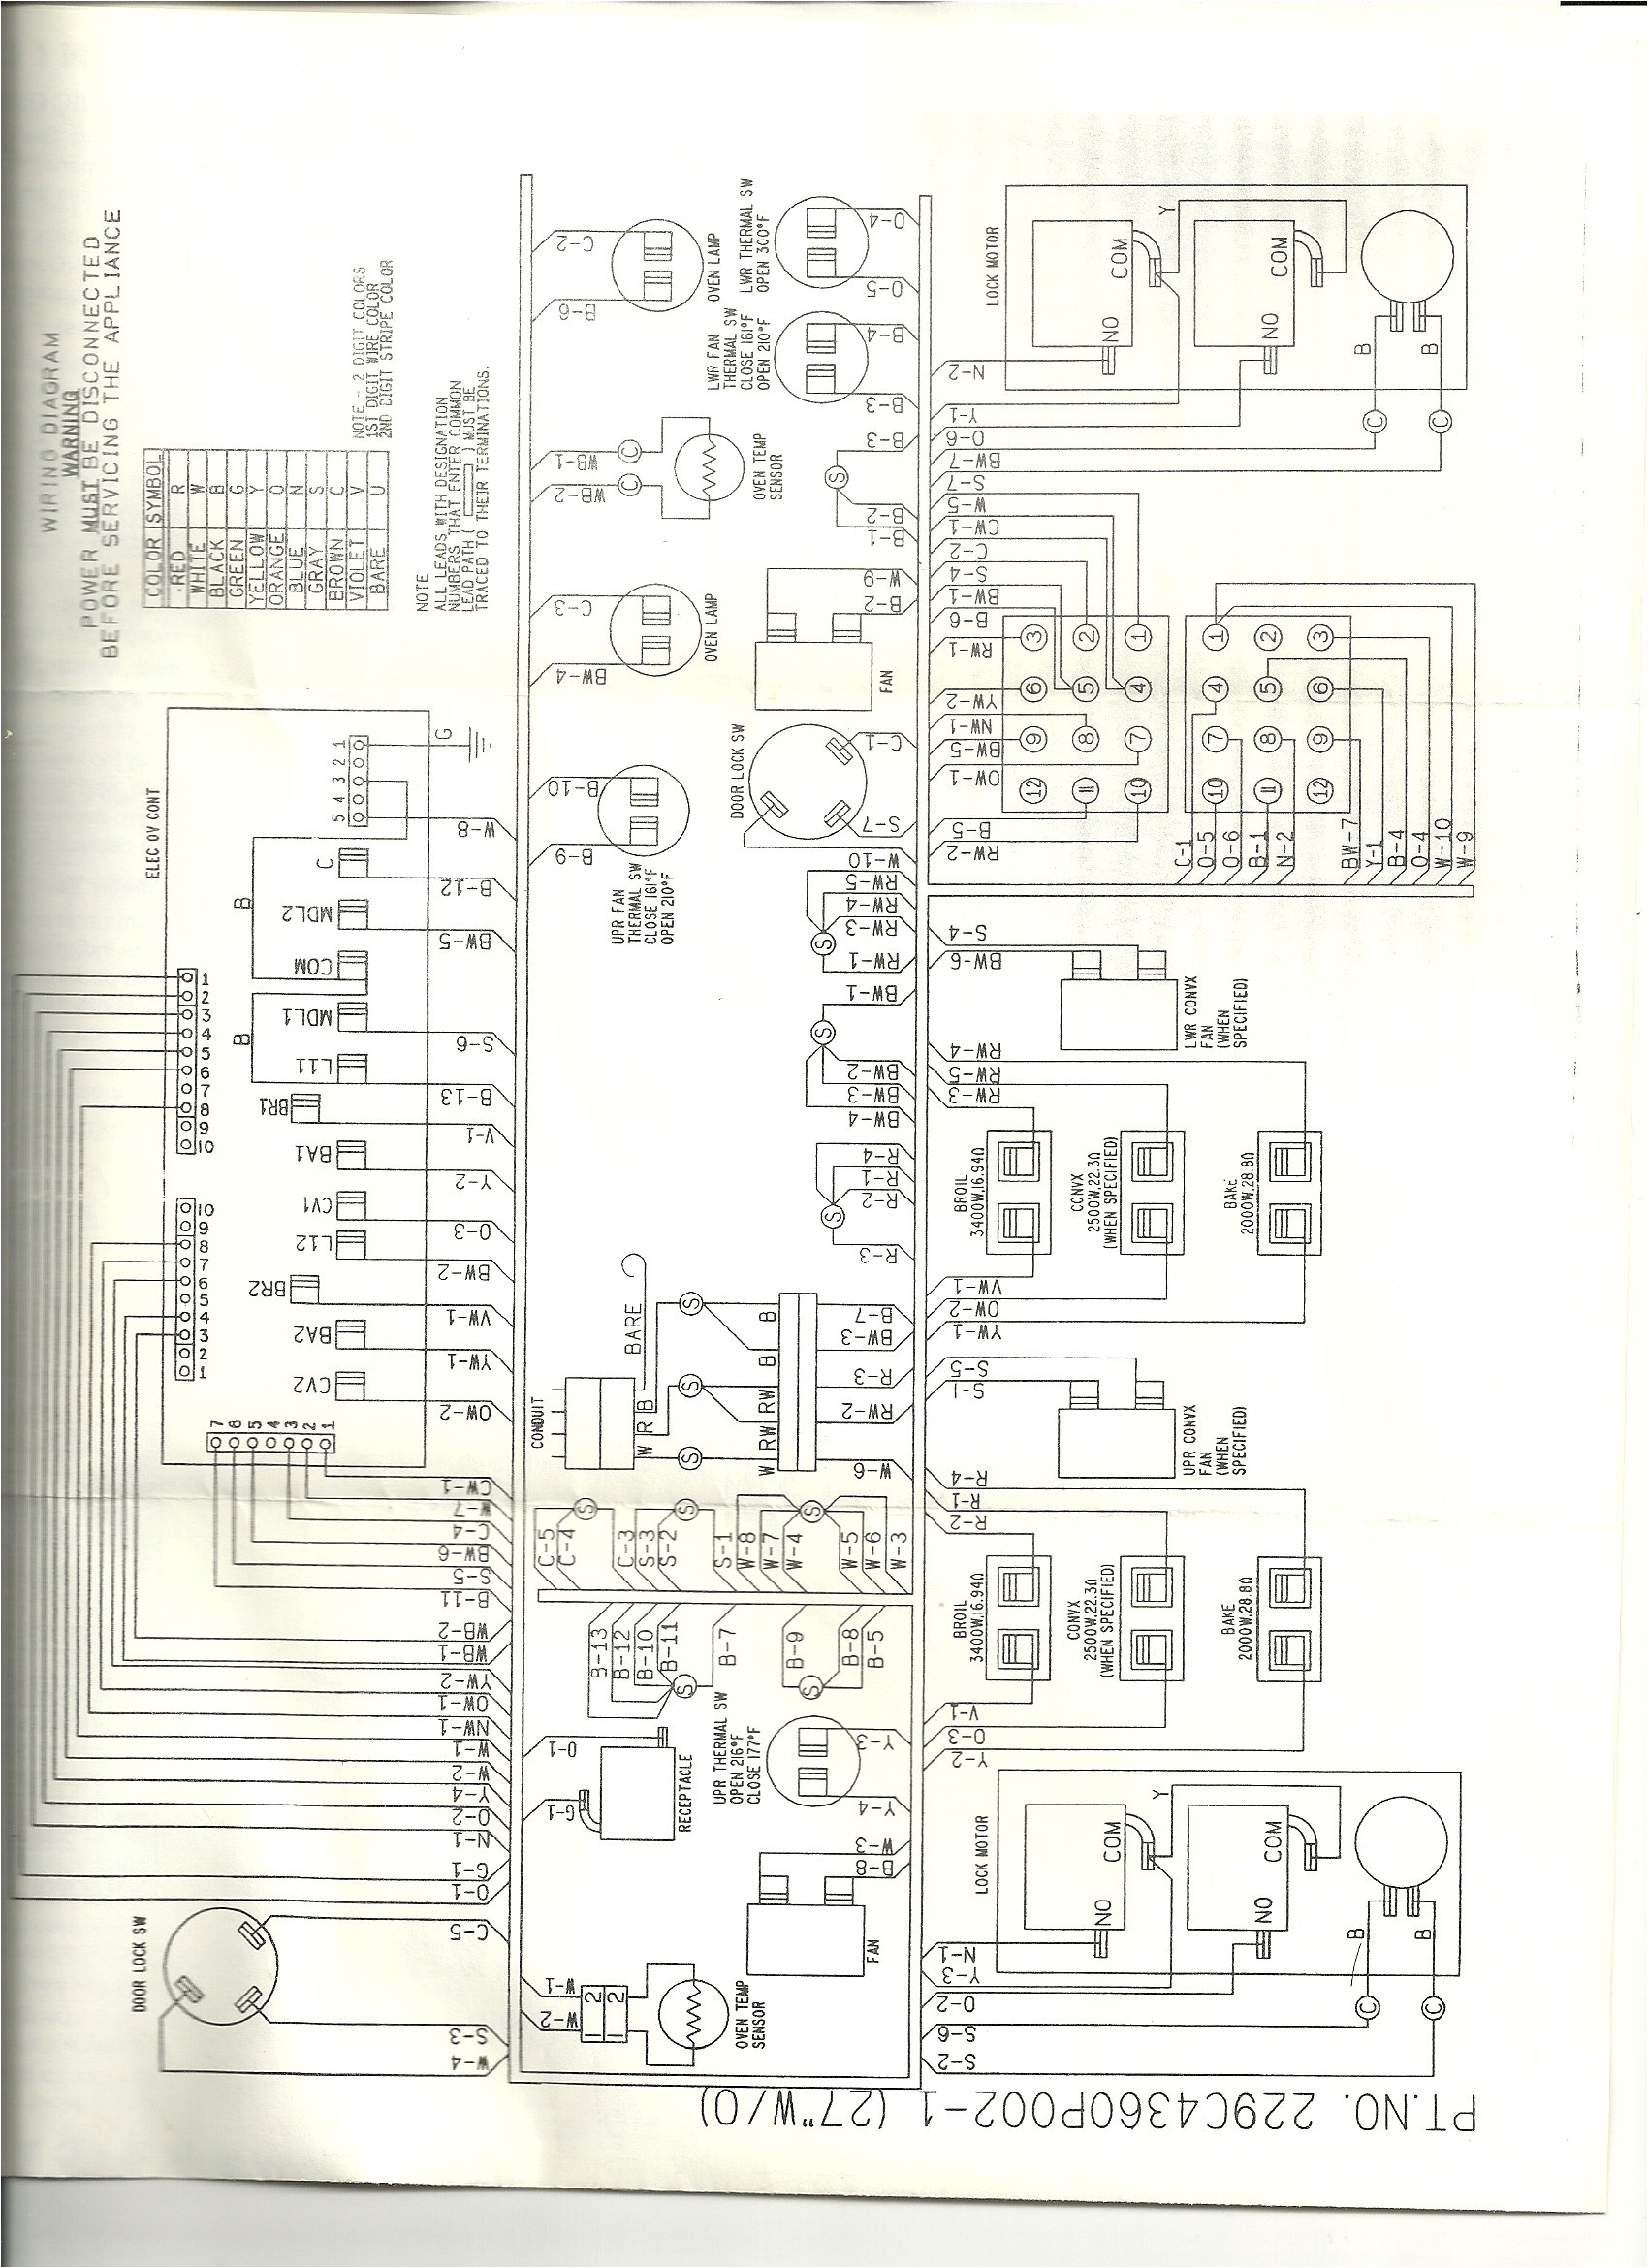 ge washer wiring diagram wiring diagram for a ge dryer new ge profile dryer electrical